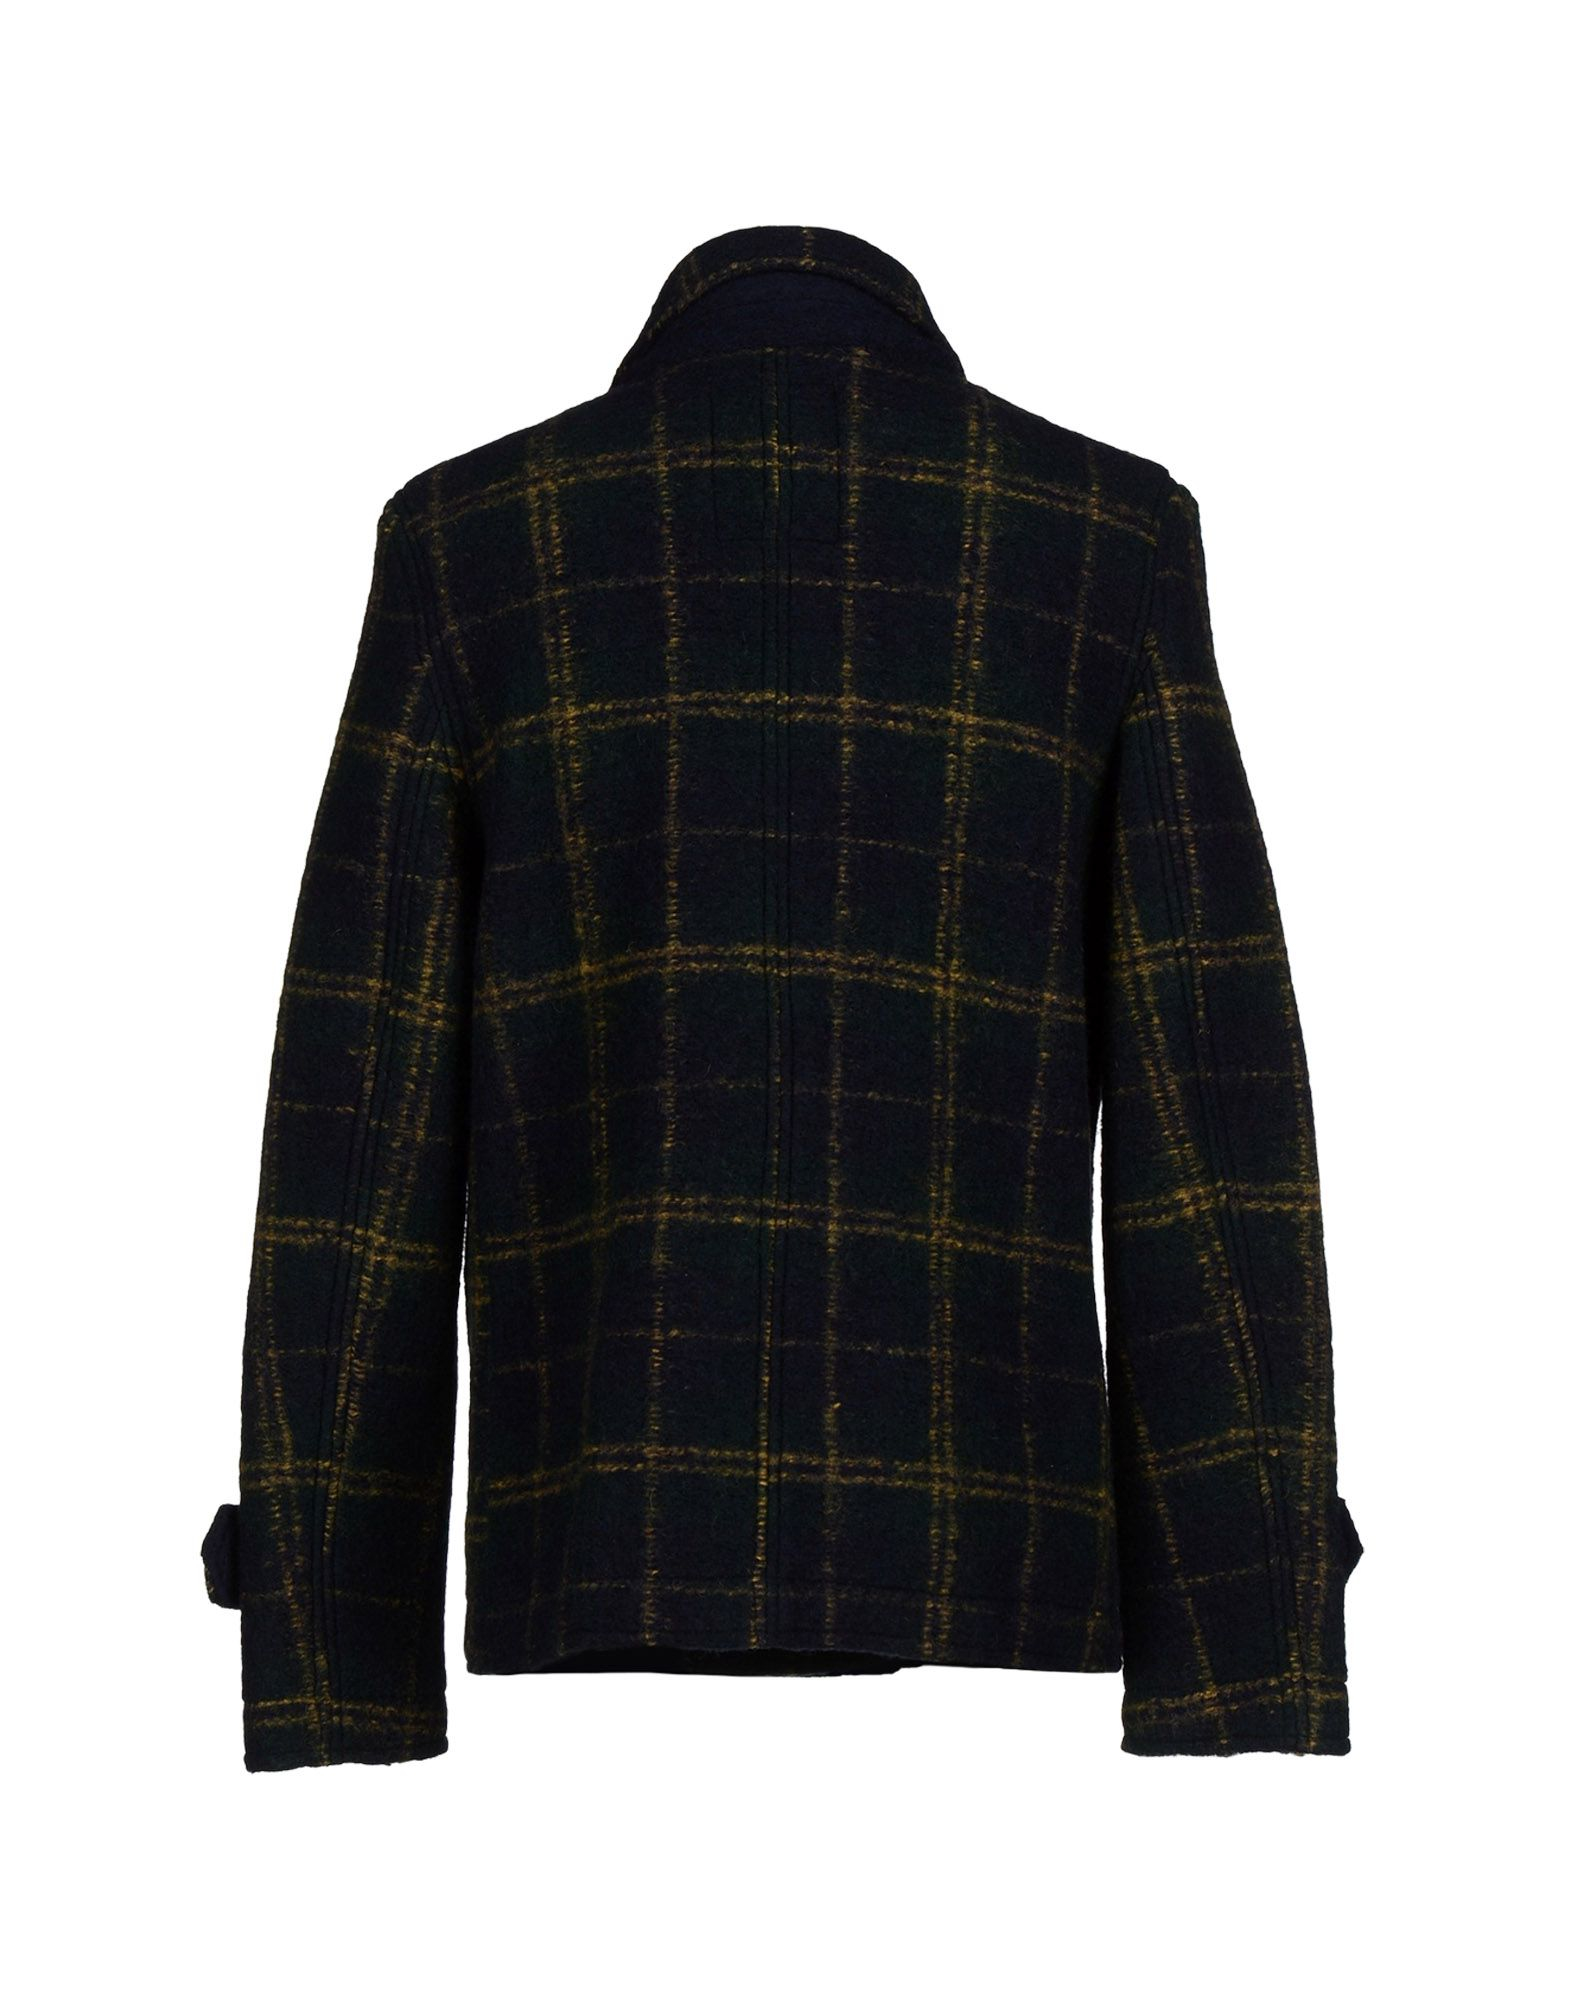 Lyst At P Co Coat In Green For Men